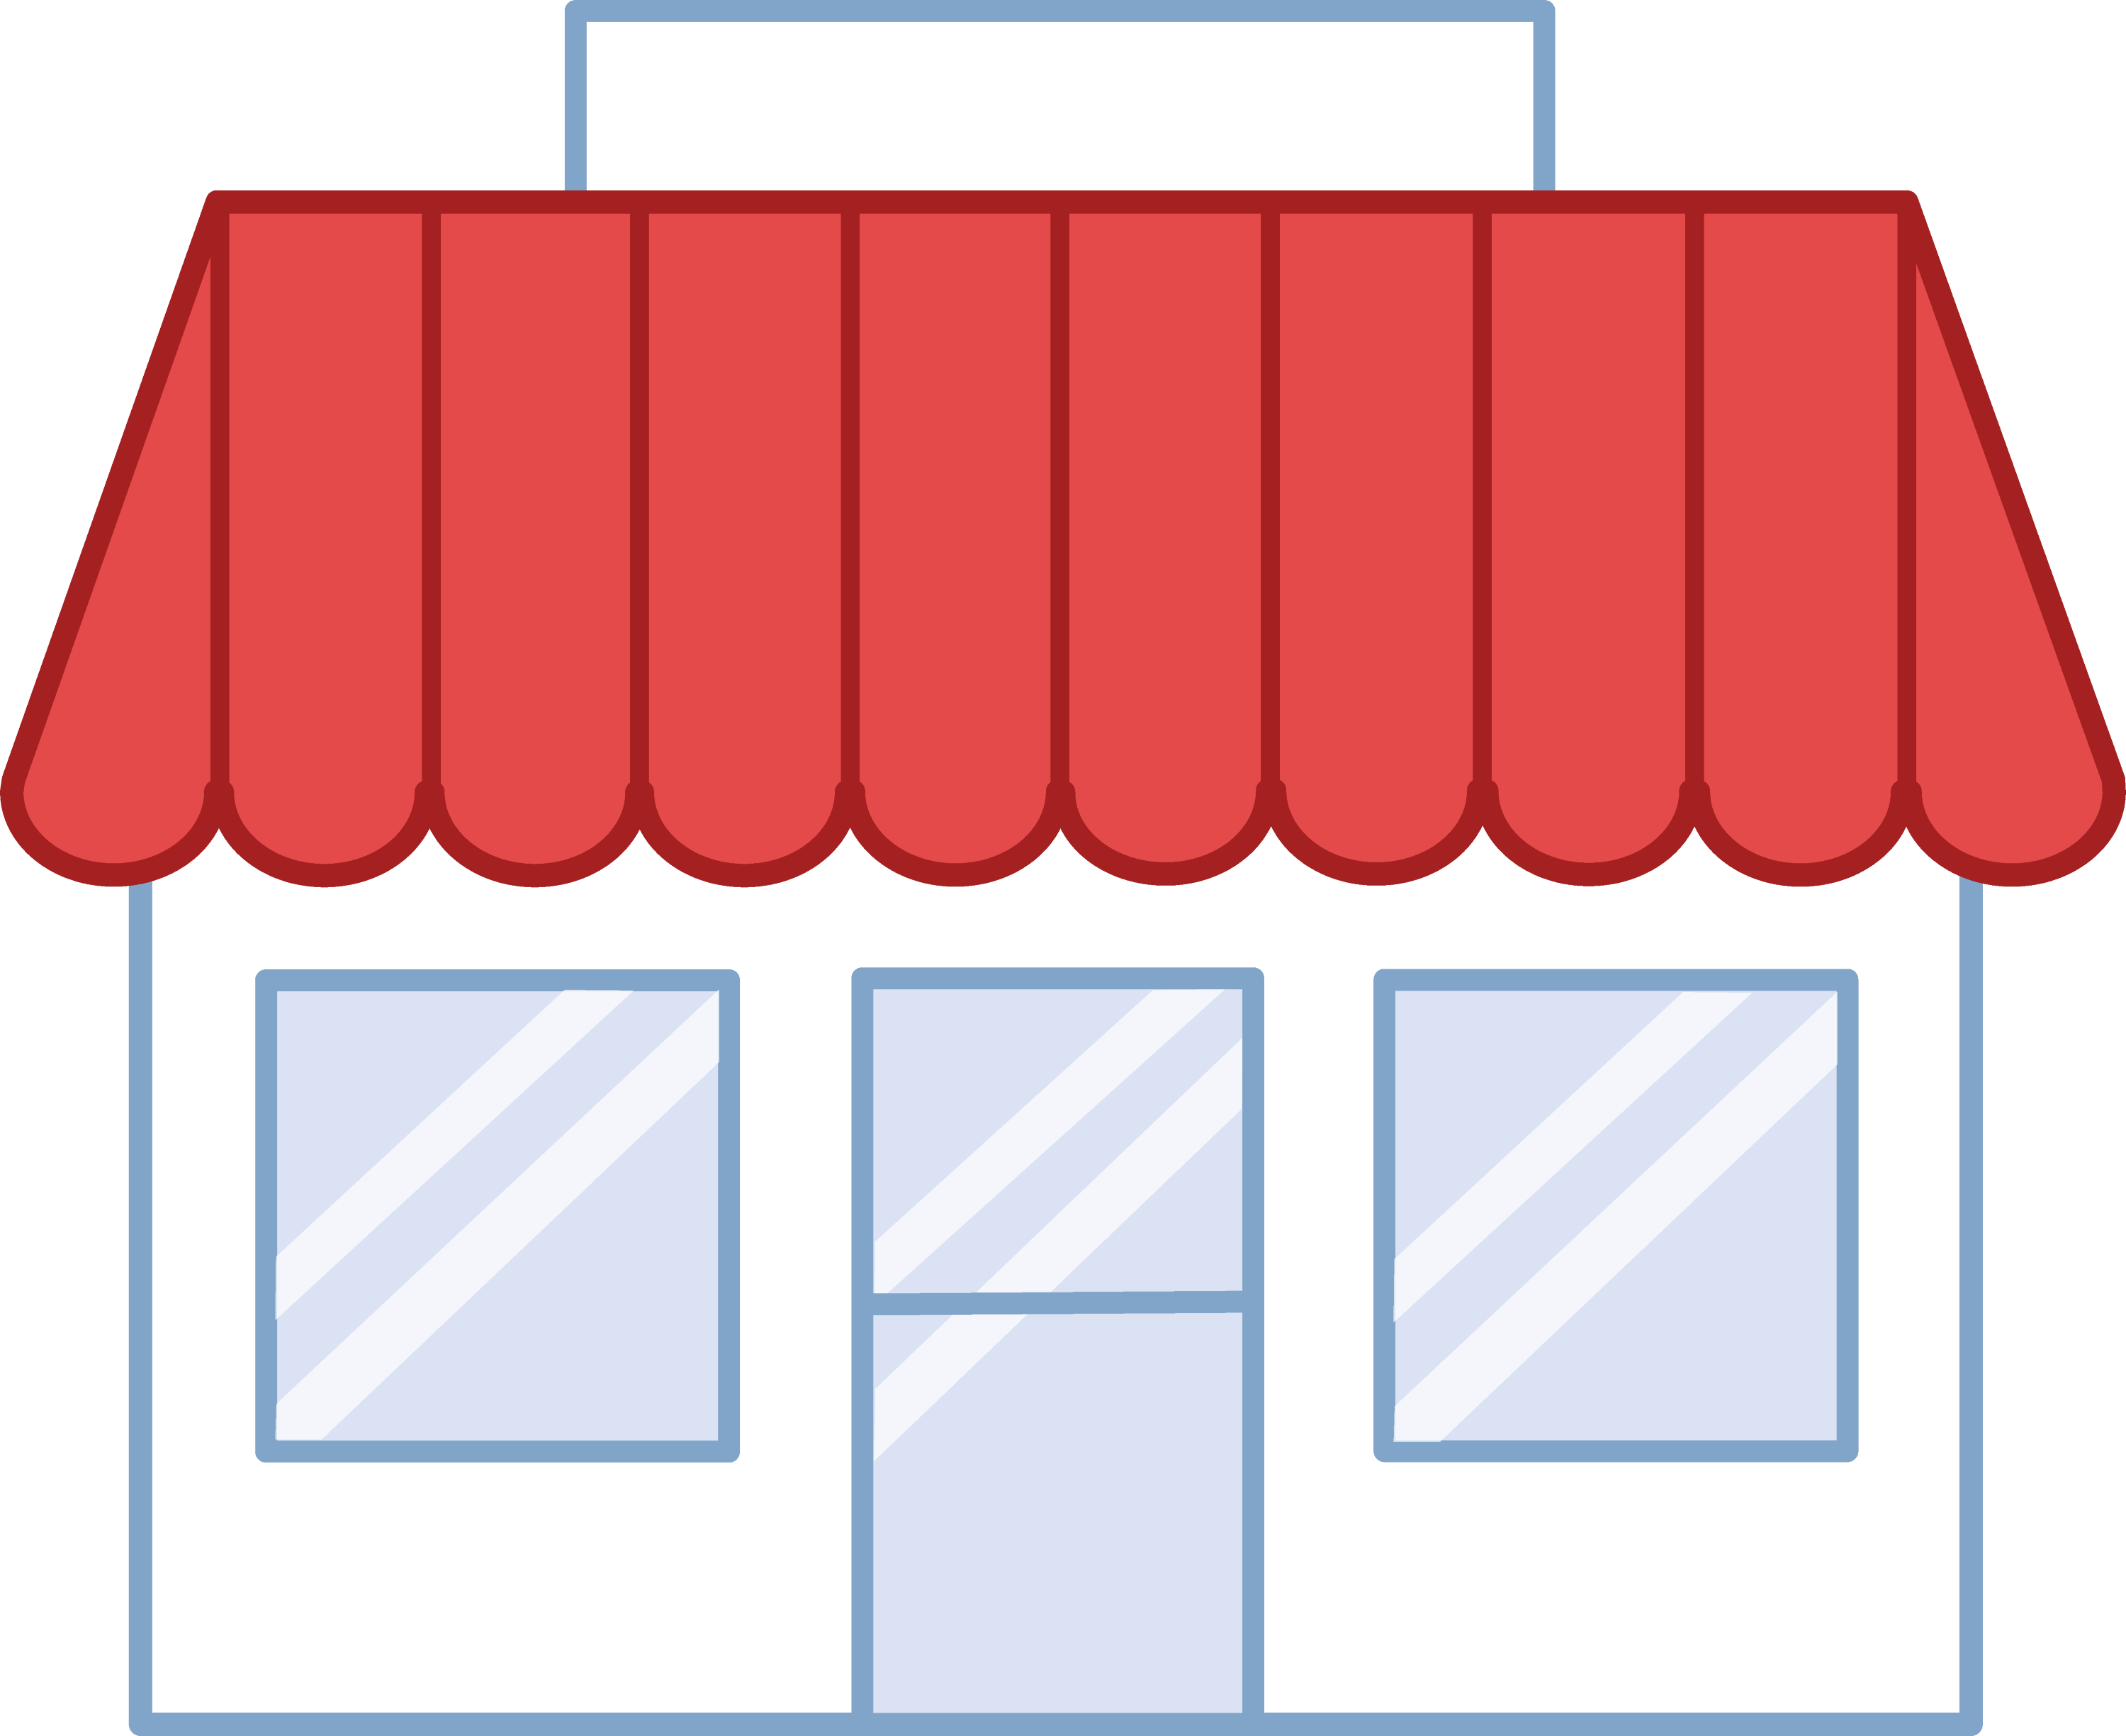 Cute Little Shop Building - Free Clip Art